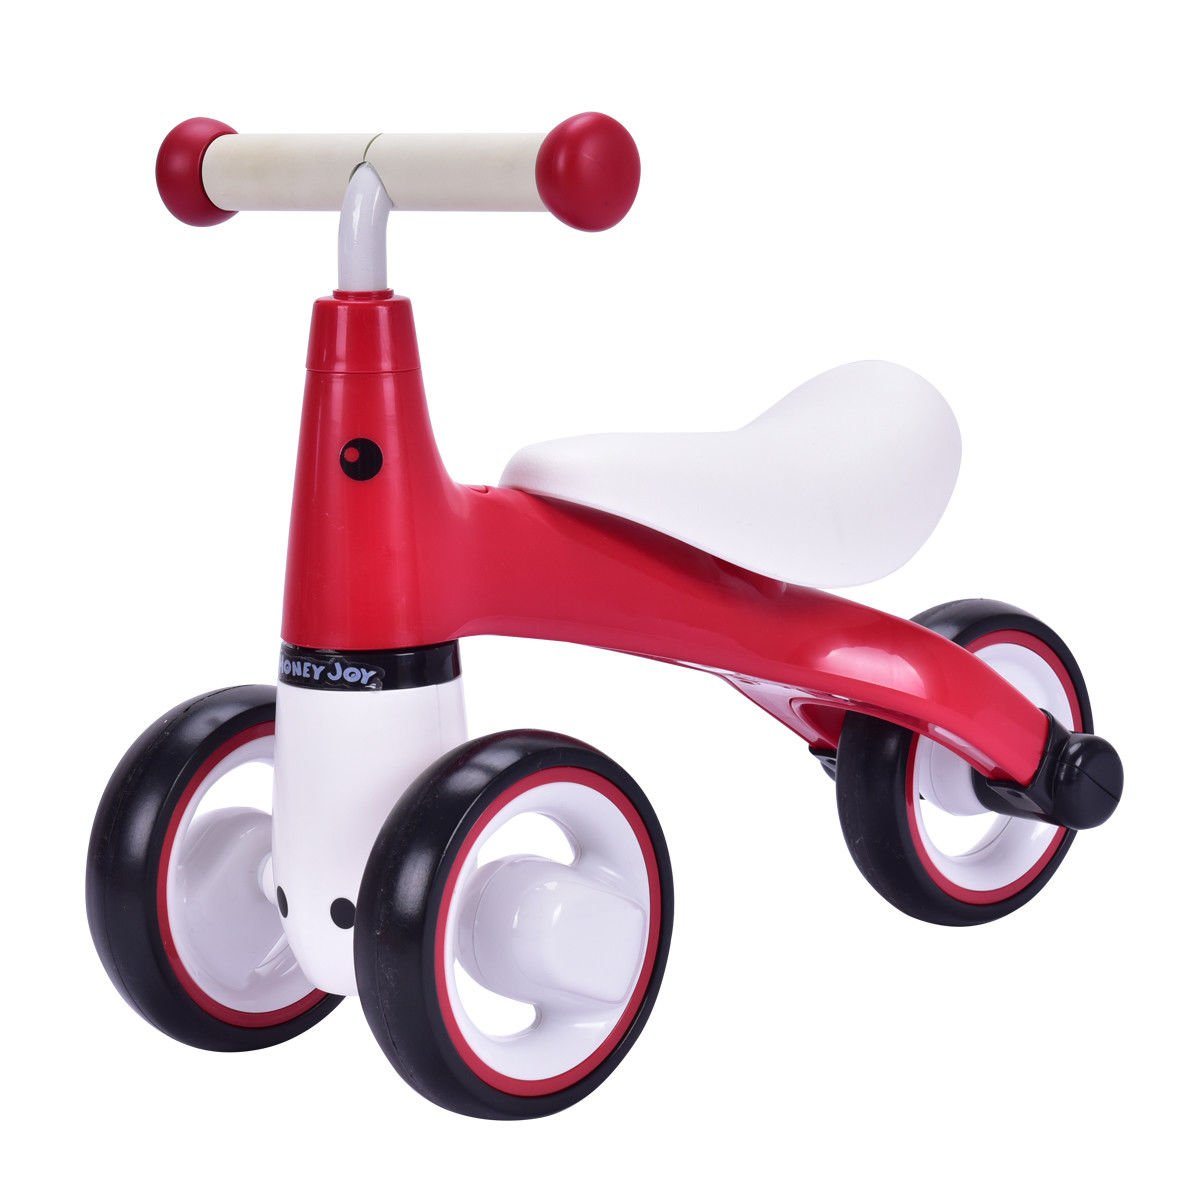 Honey Joy Baby Balance Bike, No-Pedal Toddler Trike, Learning Walker Trainer for Kids 1-3 Years Old BABY JOY